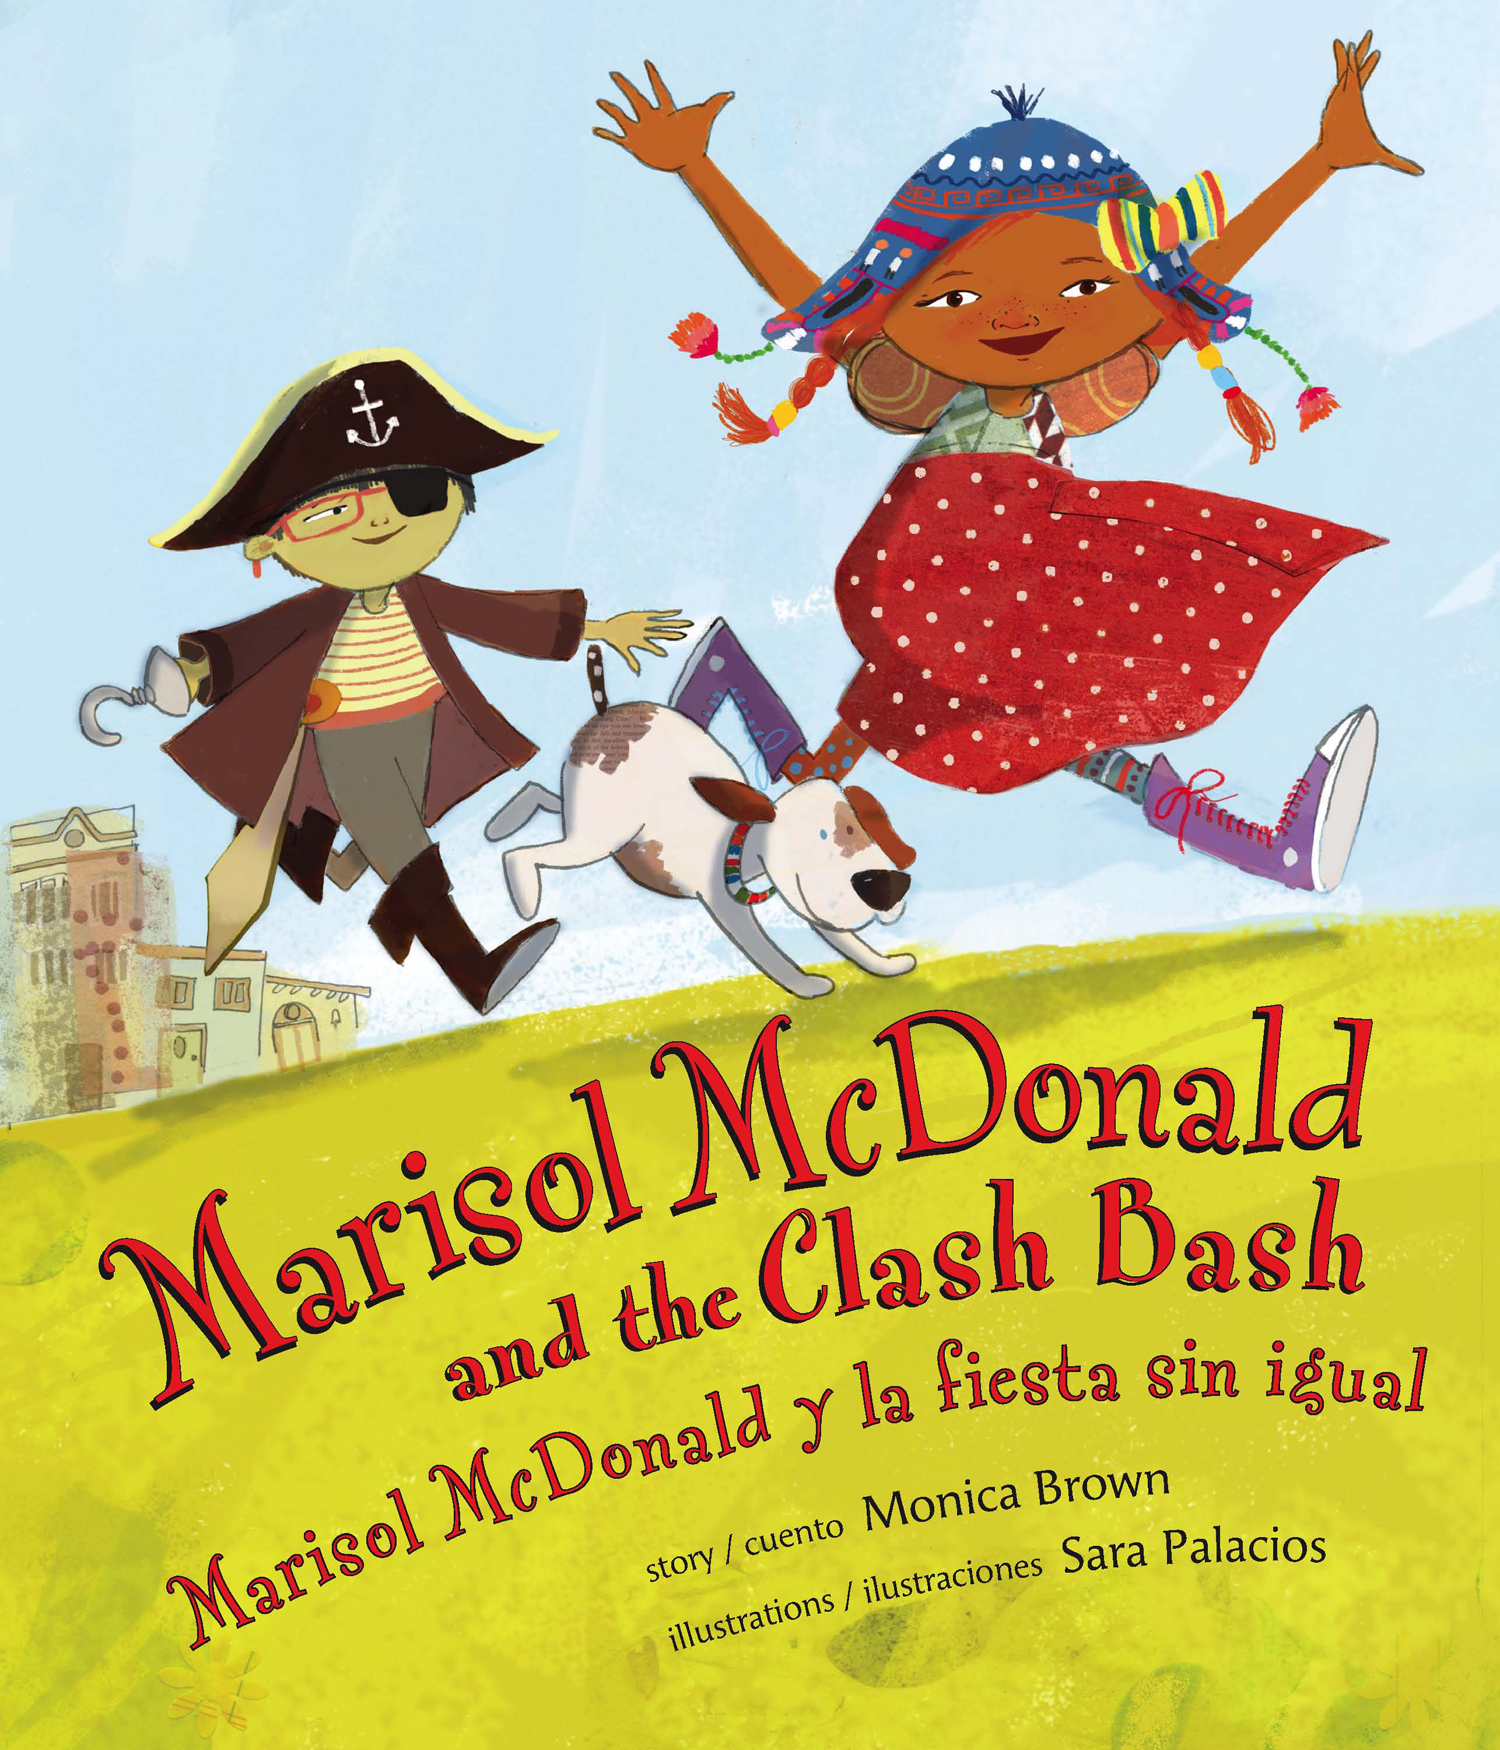 """Marisol McDonald and the Clash Bash"" by Monica Brown and illustrated by Sara Palacios/Courtesy of LEE & LOW BOOKS"